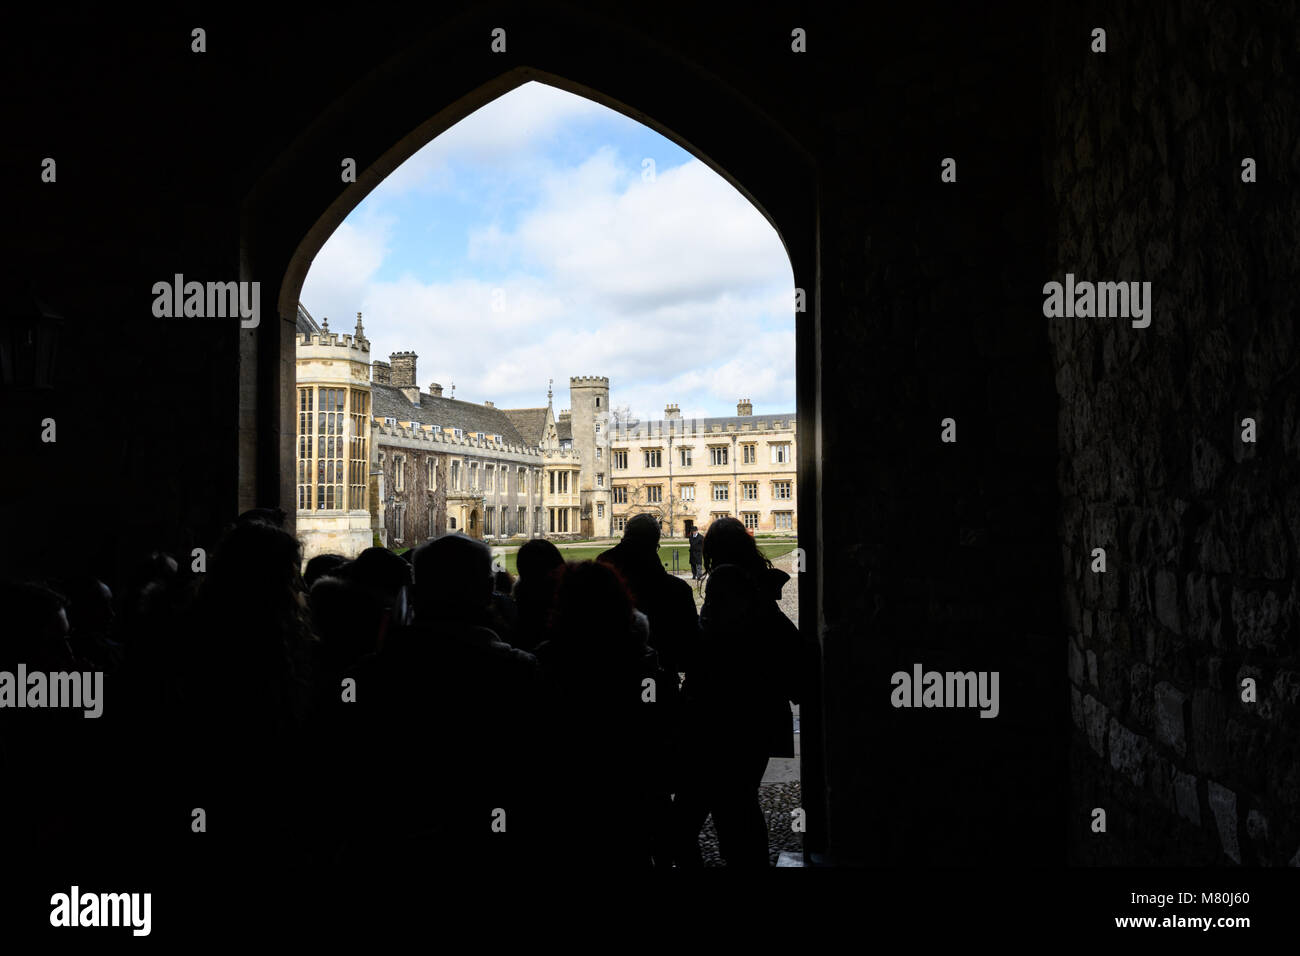 A group of school students in the Queens' Gate overlooking the Great Court at Trinity college, Cambridge University, - Stock Image